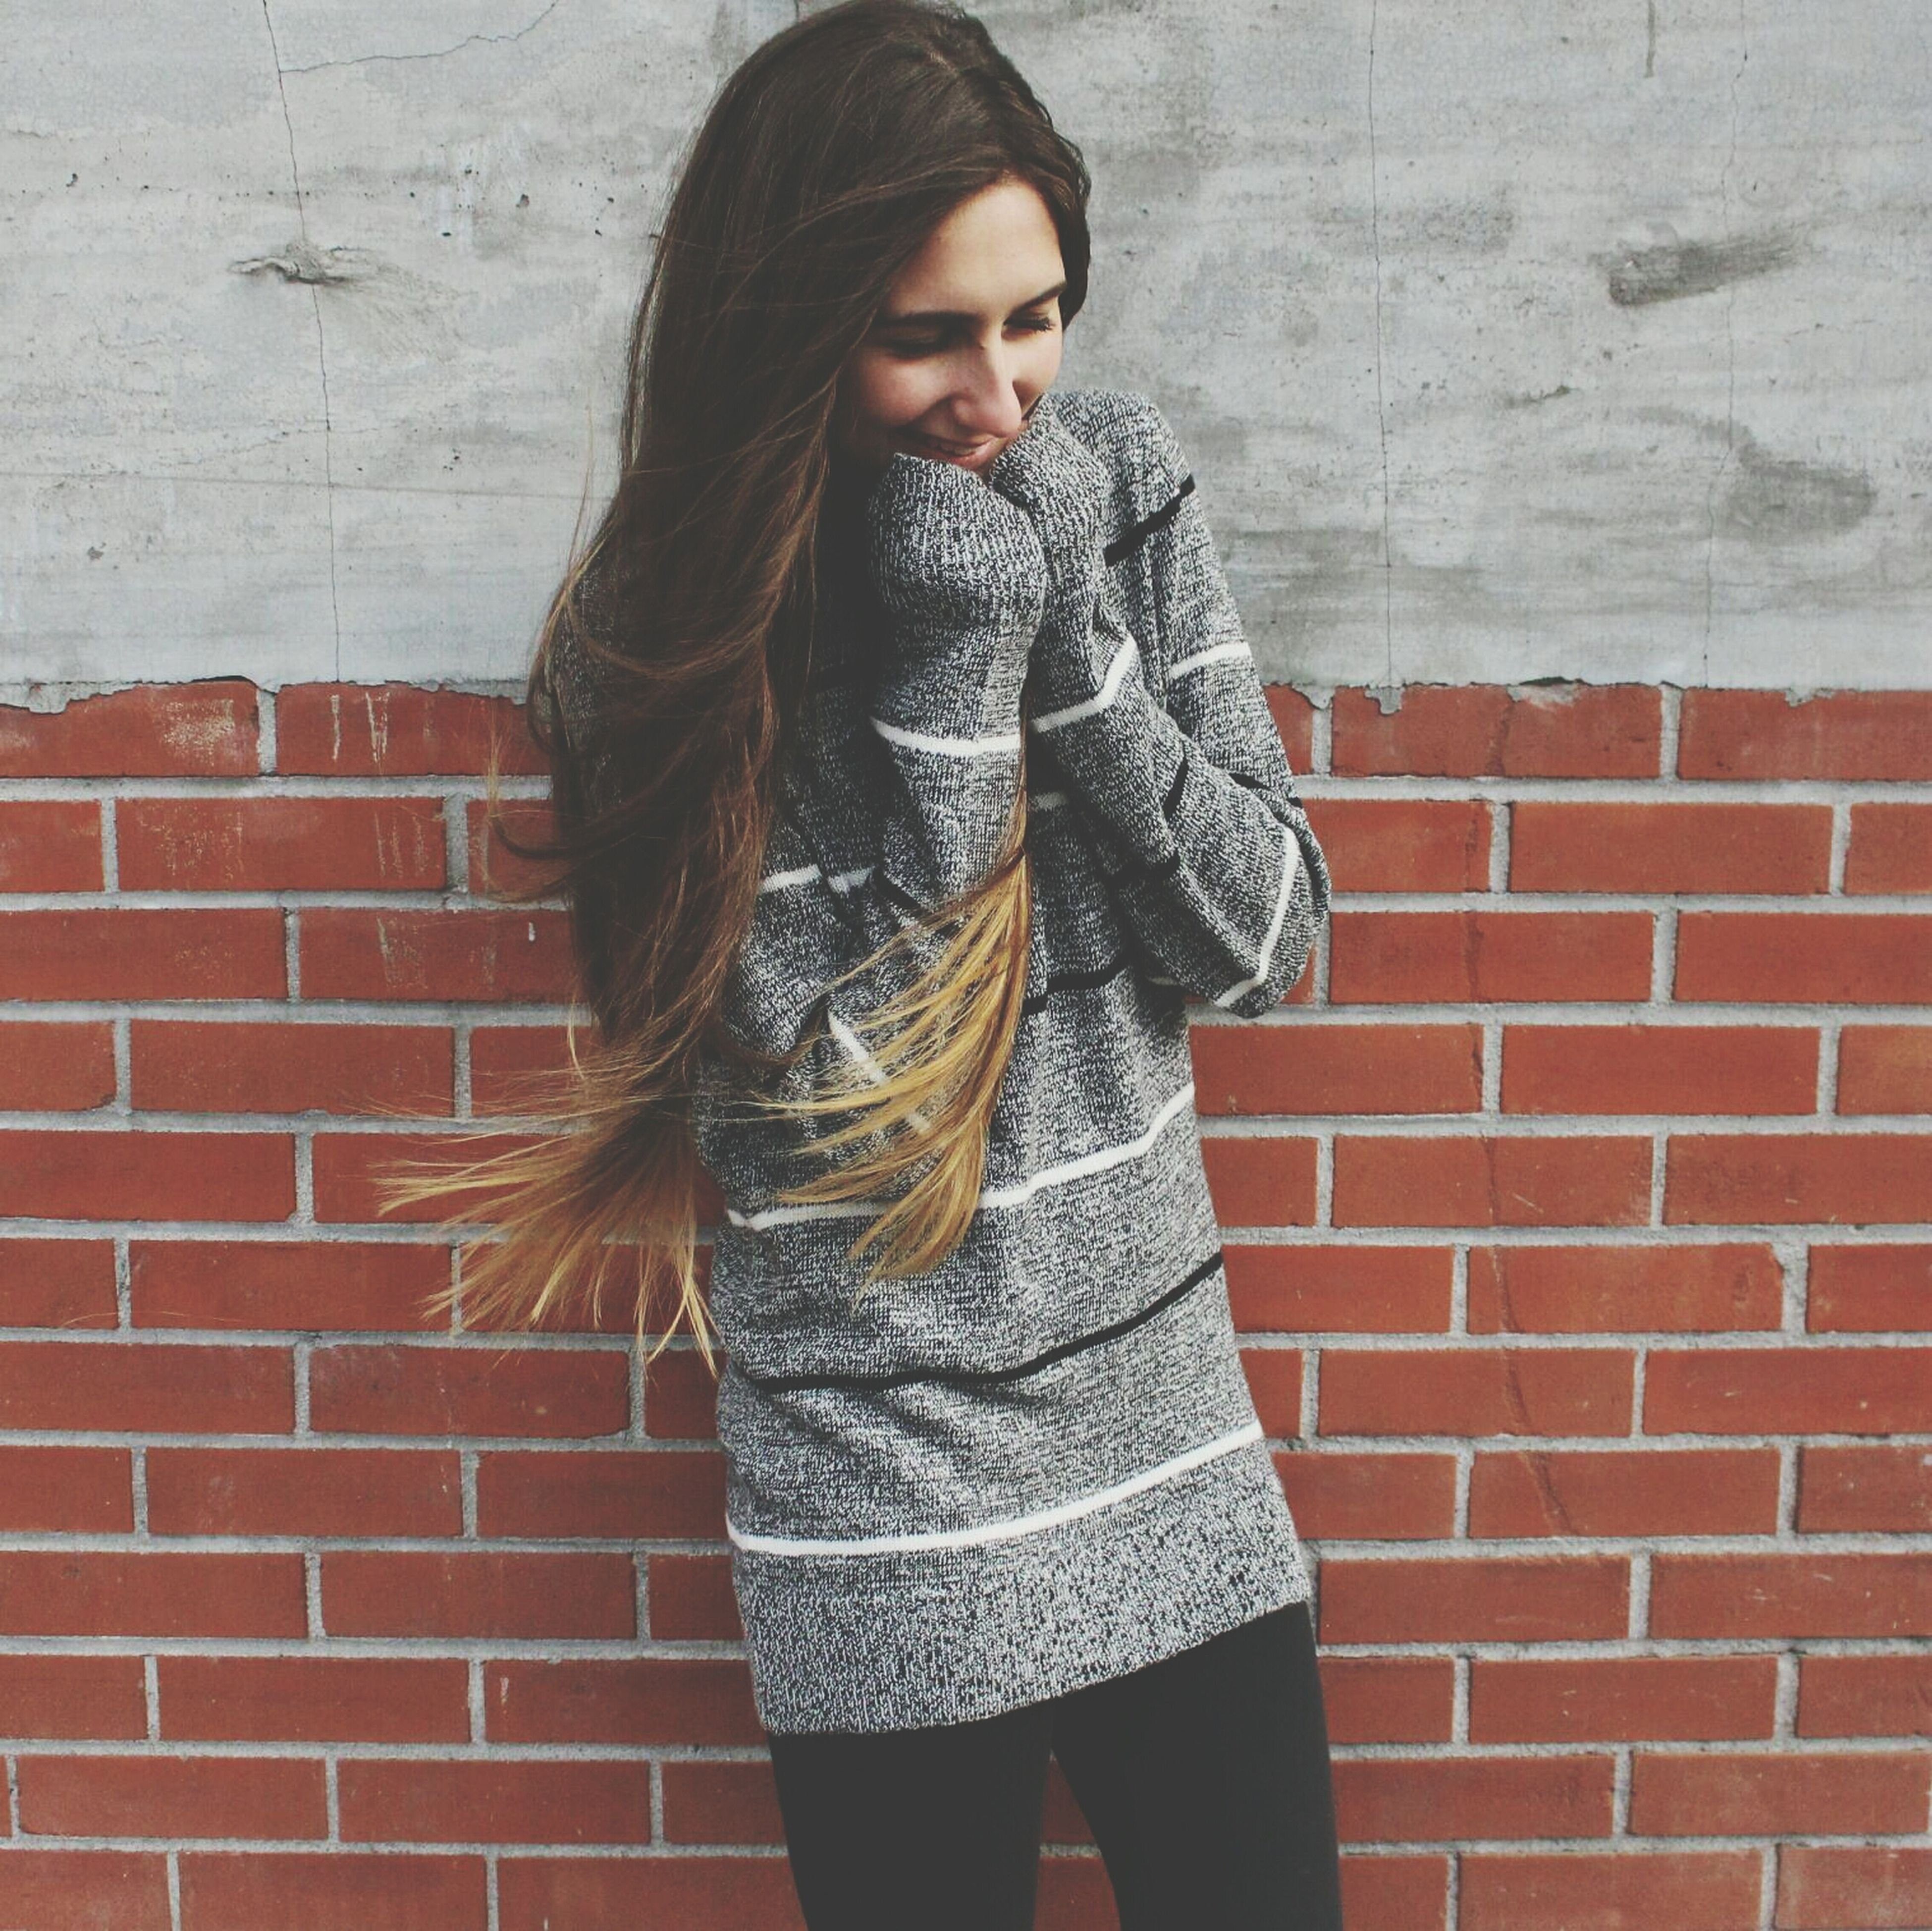 casual clothing, young adult, standing, person, young women, front view, lifestyles, wall - building feature, brick wall, portrait, looking at camera, long hair, three quarter length, leisure activity, fashionable, jacket, wall